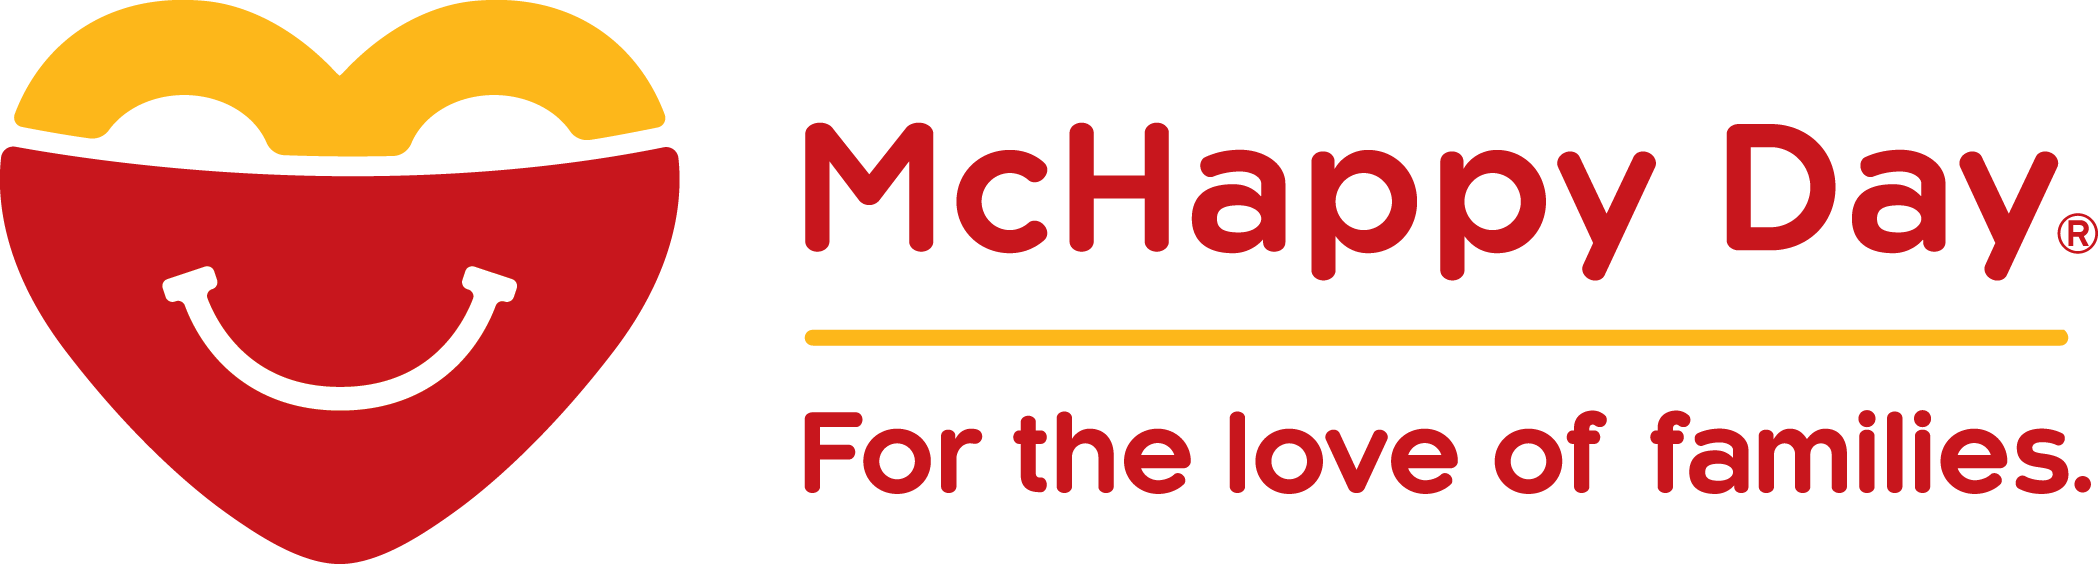 McHappy Day.